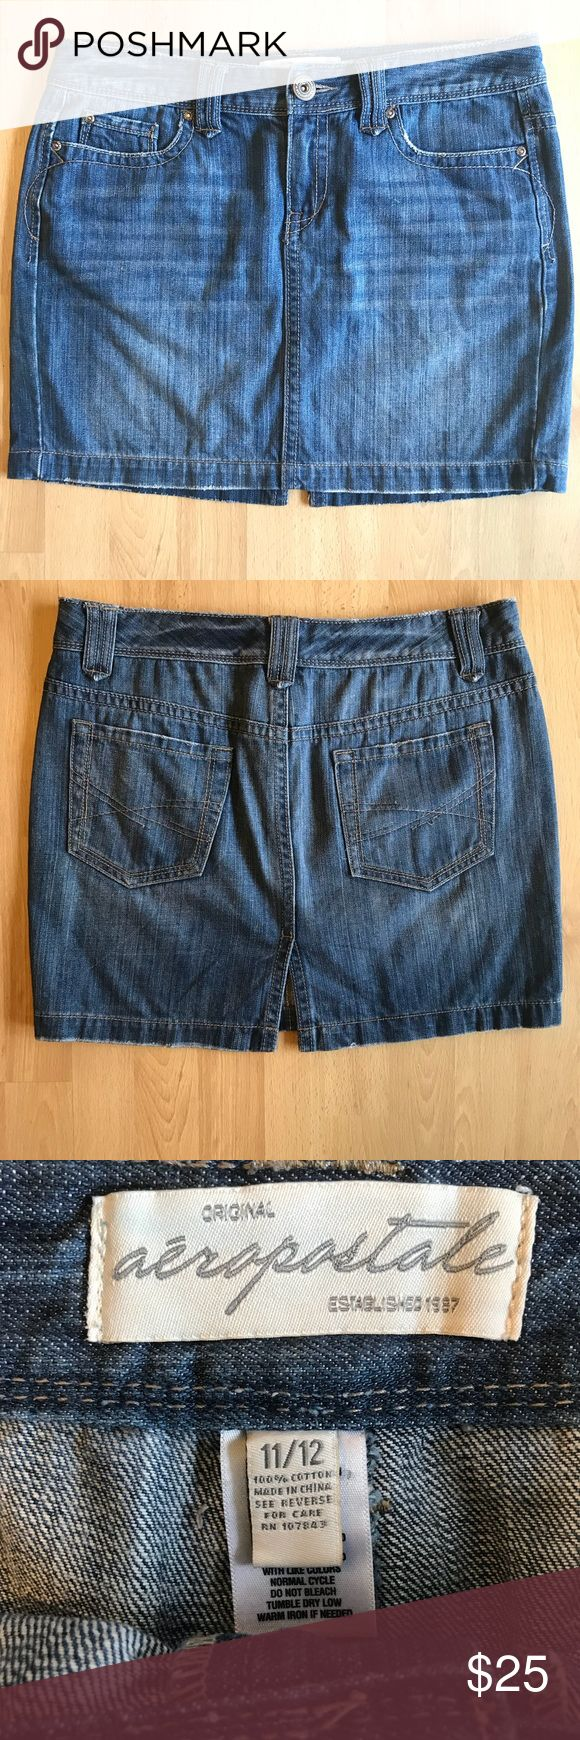 "Aeropostale Denim Mini Skirt Size Large Excellent condition. Size 11/12. Zipper and button closure. Ships fast!  Approximate measurements laying flat: Waist: 17"" across Hips: 20"" across Length 16"" Aeropostale Skirts Mini"